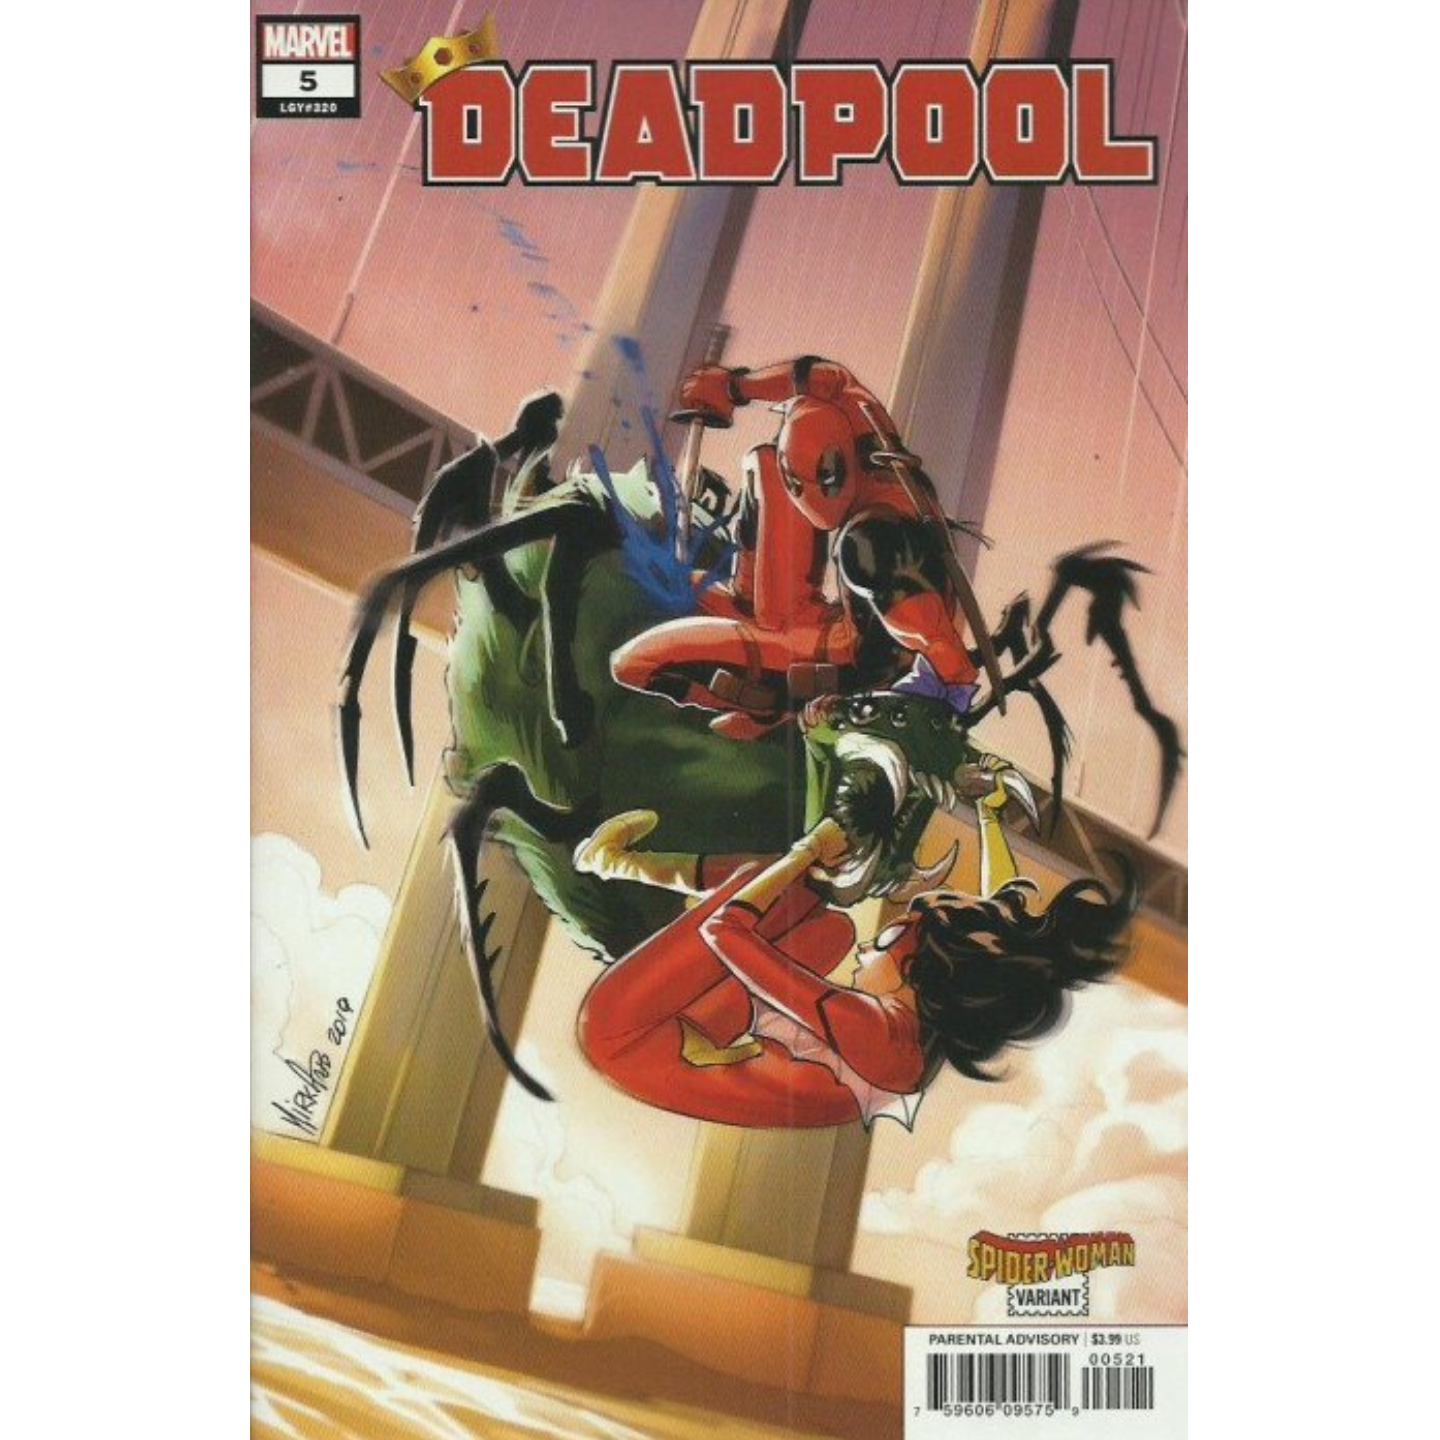 DEADPOOL #5 SPIDER-WOMAN VARIANT